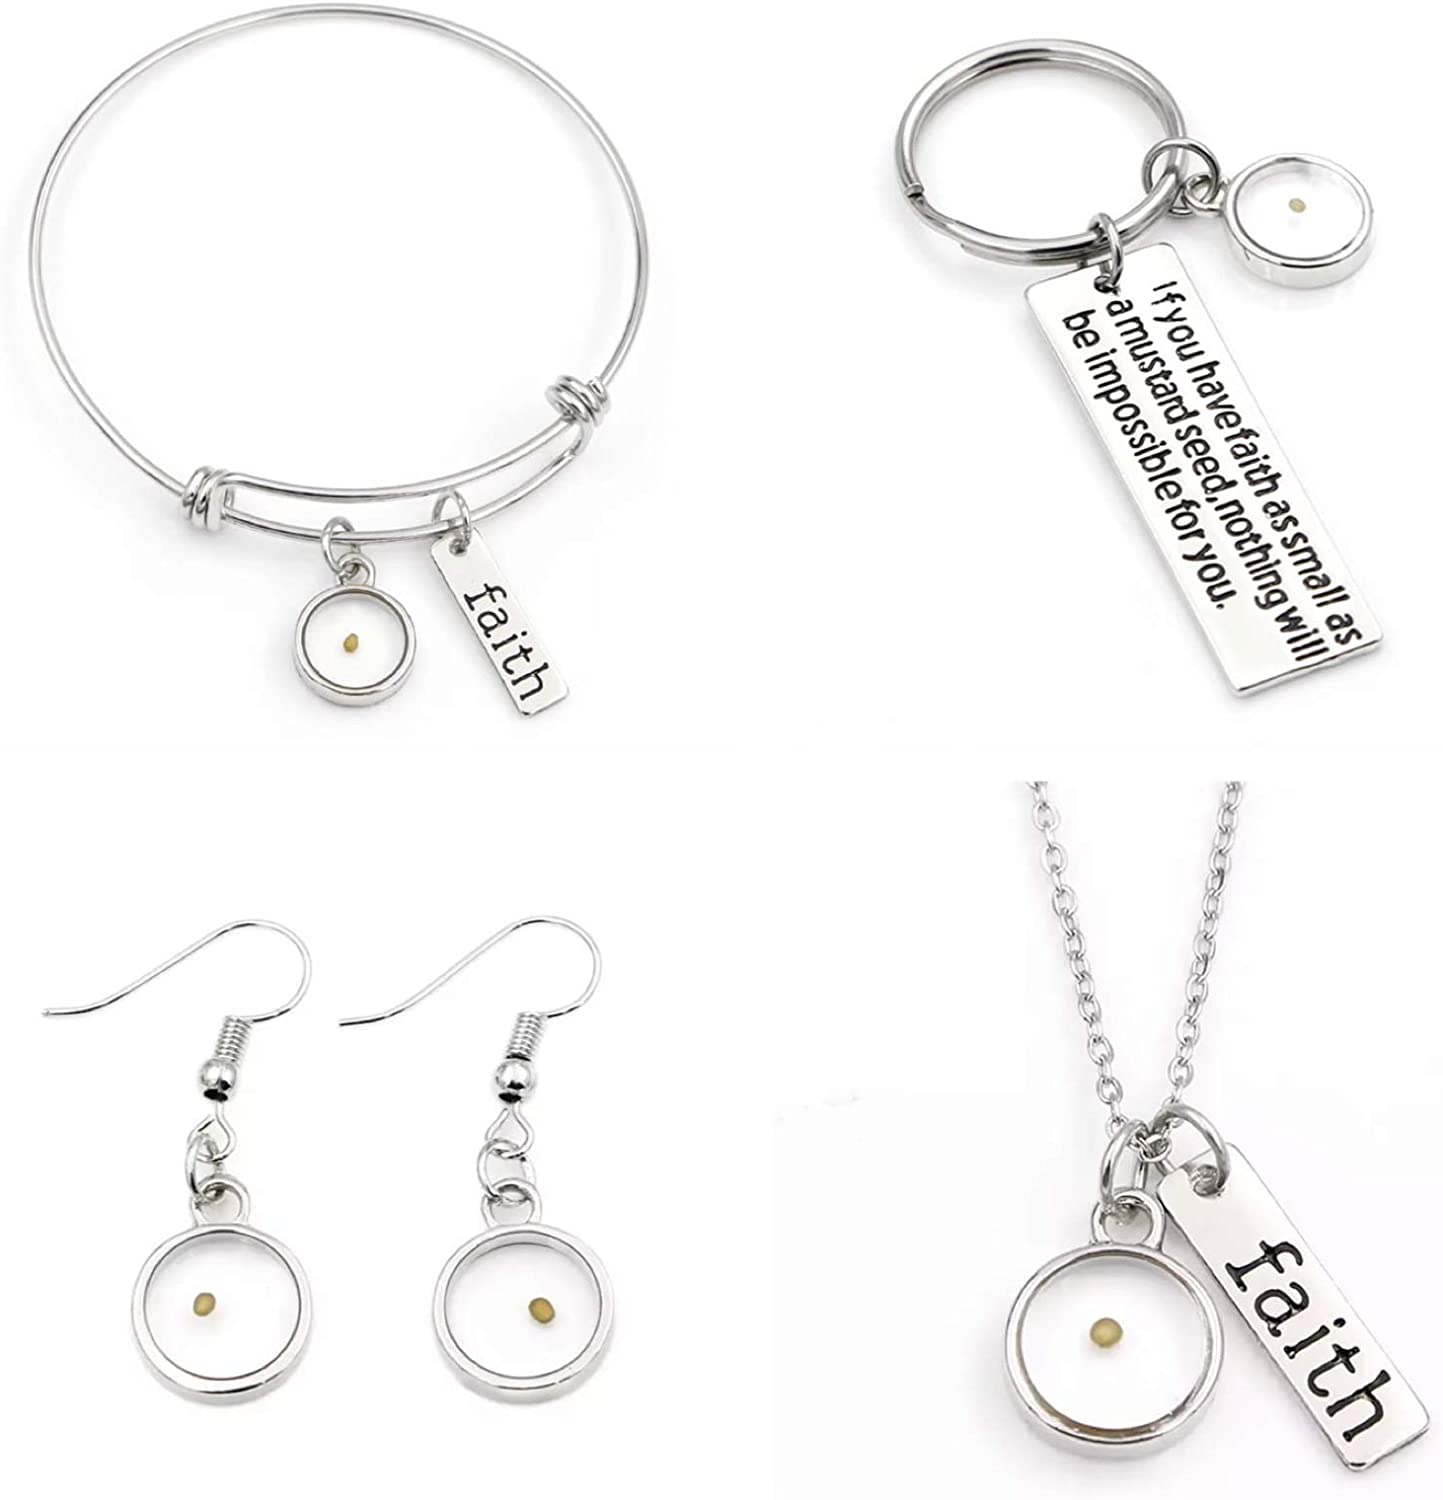 Stainless Steel Faith Women Bracelets - Necklace - Earring - Bible Keyring set Set of 4 Mustard Seed Charm Gifts